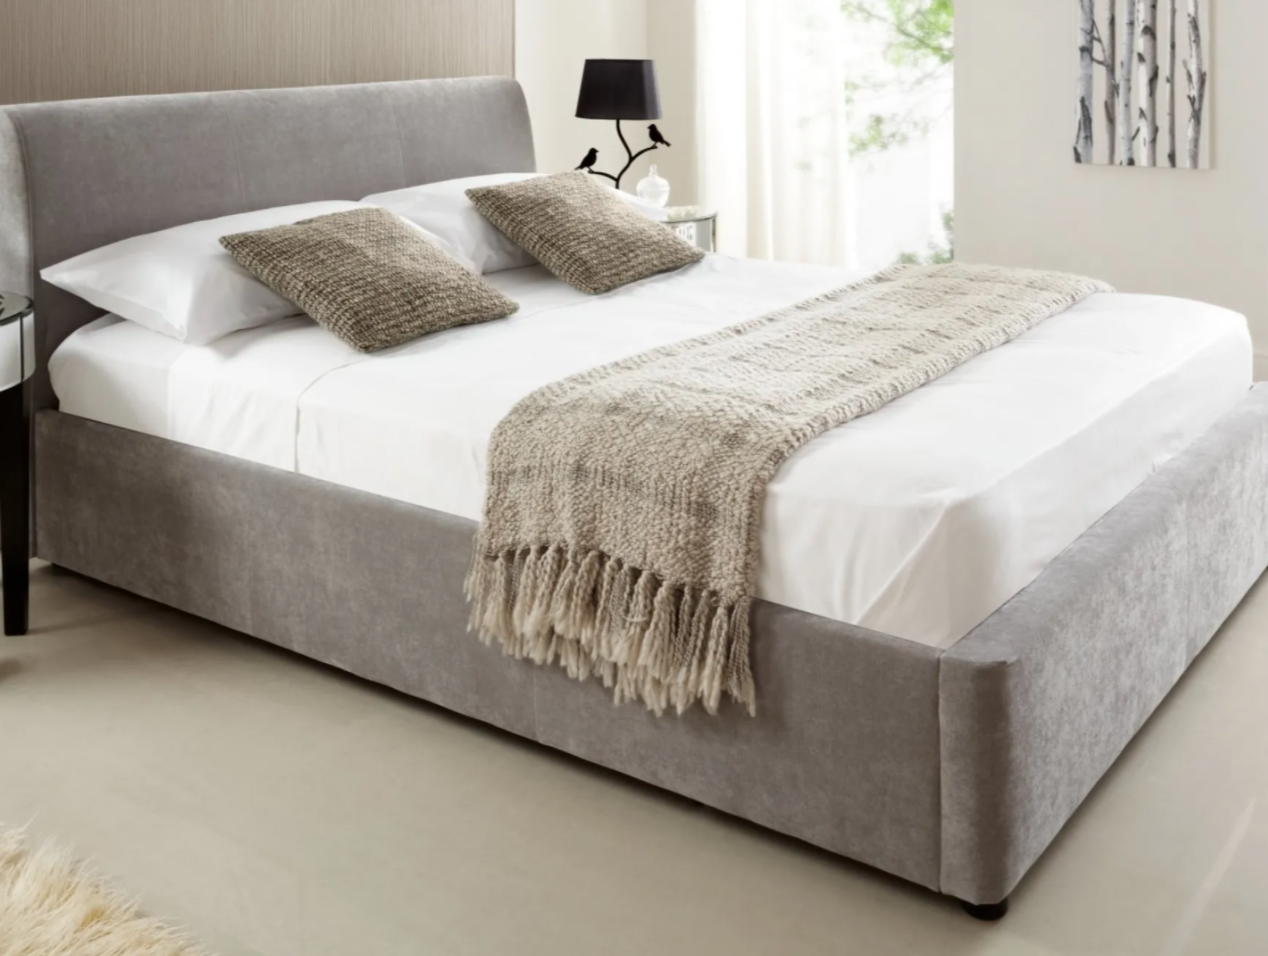 serenity upholstered ottoman bed in grey